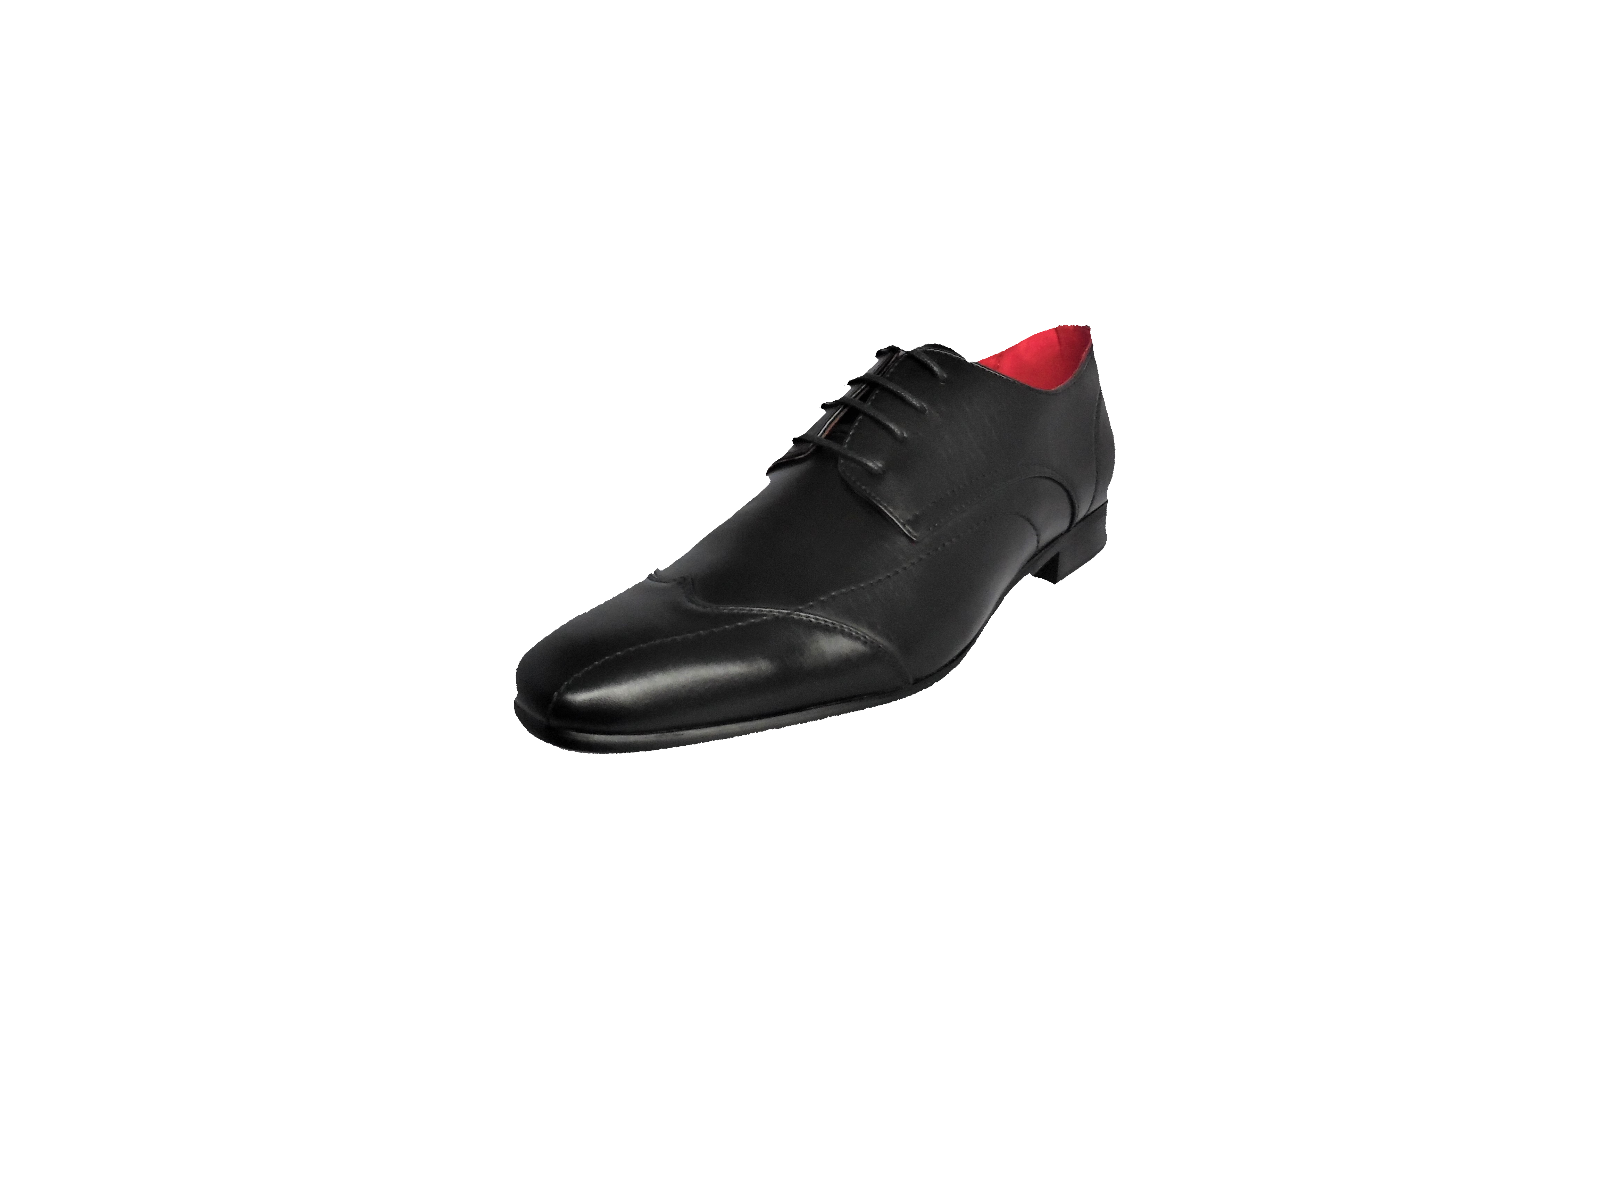 N1110 BOYS JCDEES BLACK PATENT FORMAL SMART LACE UP FASTENING SMART SCHOOL SHOES